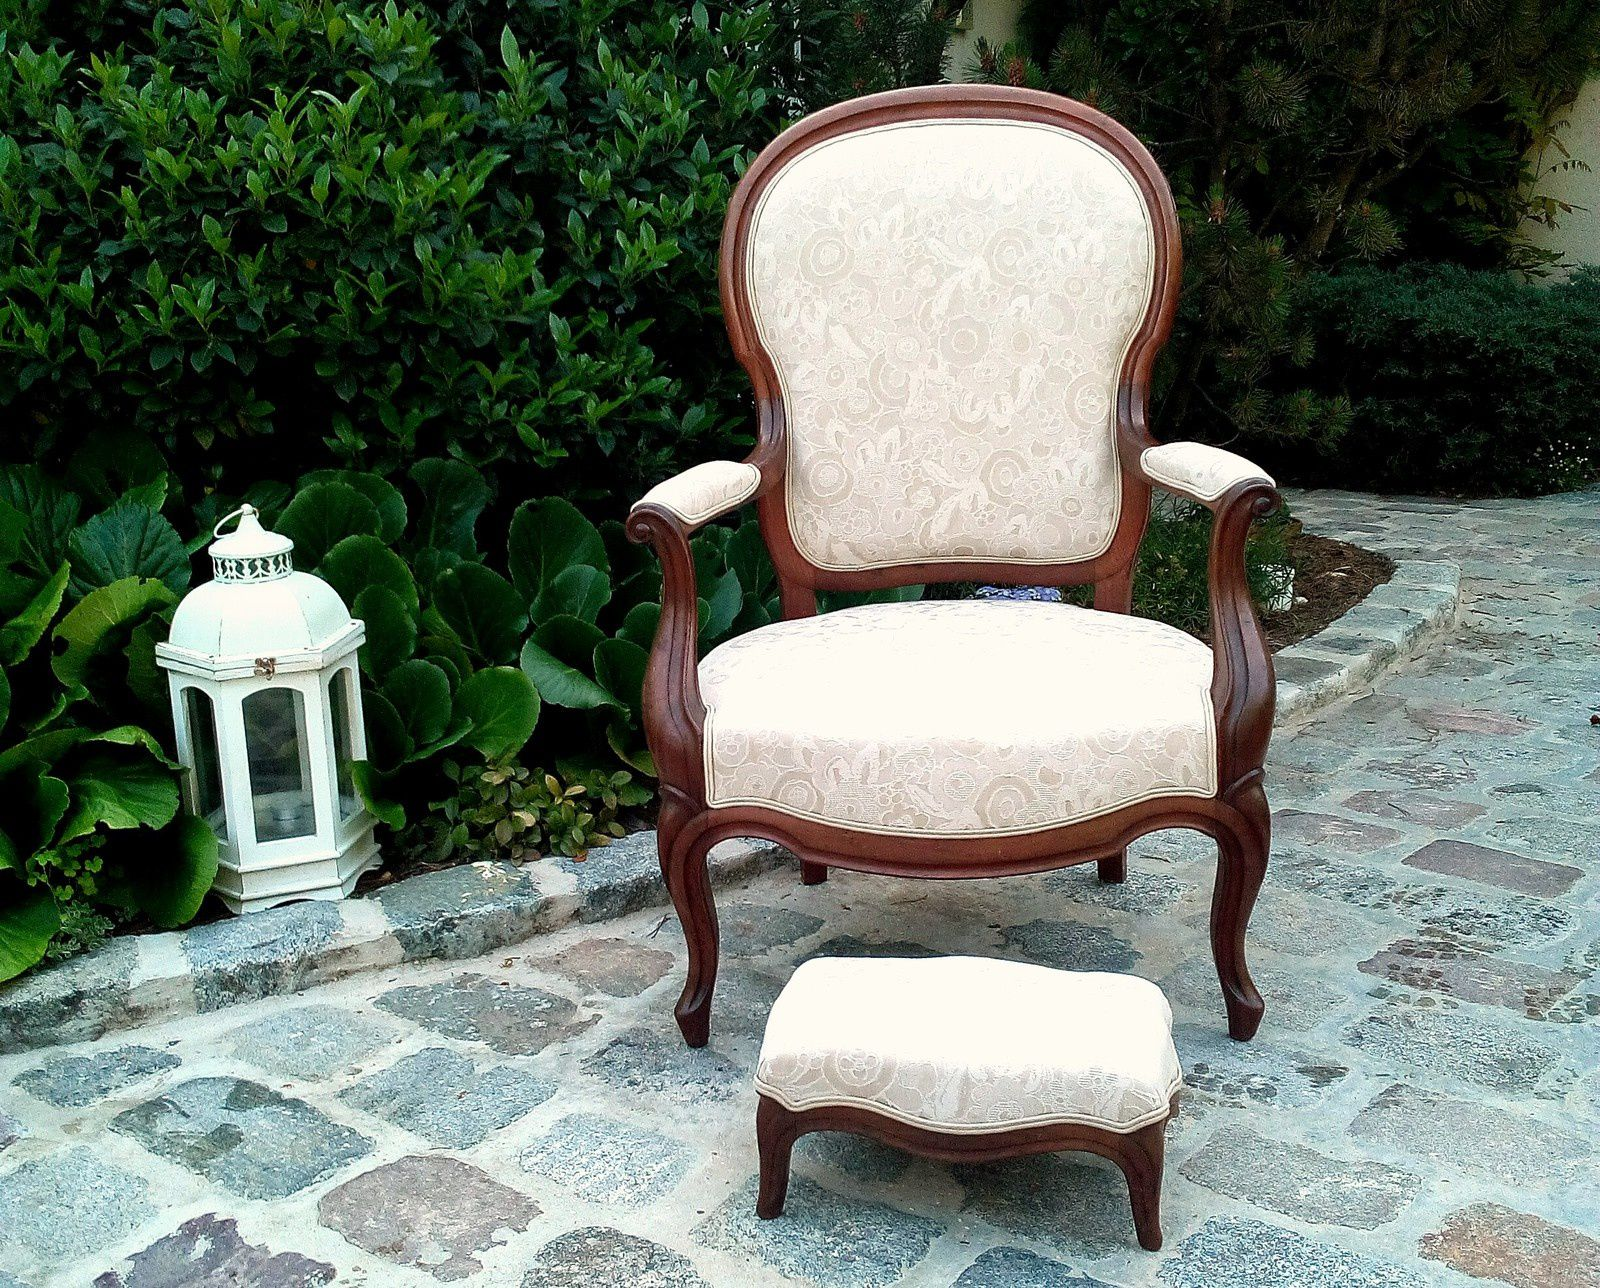 Fauteuil Louis Philippe, garniture traditionnelle, finition double-passepoil